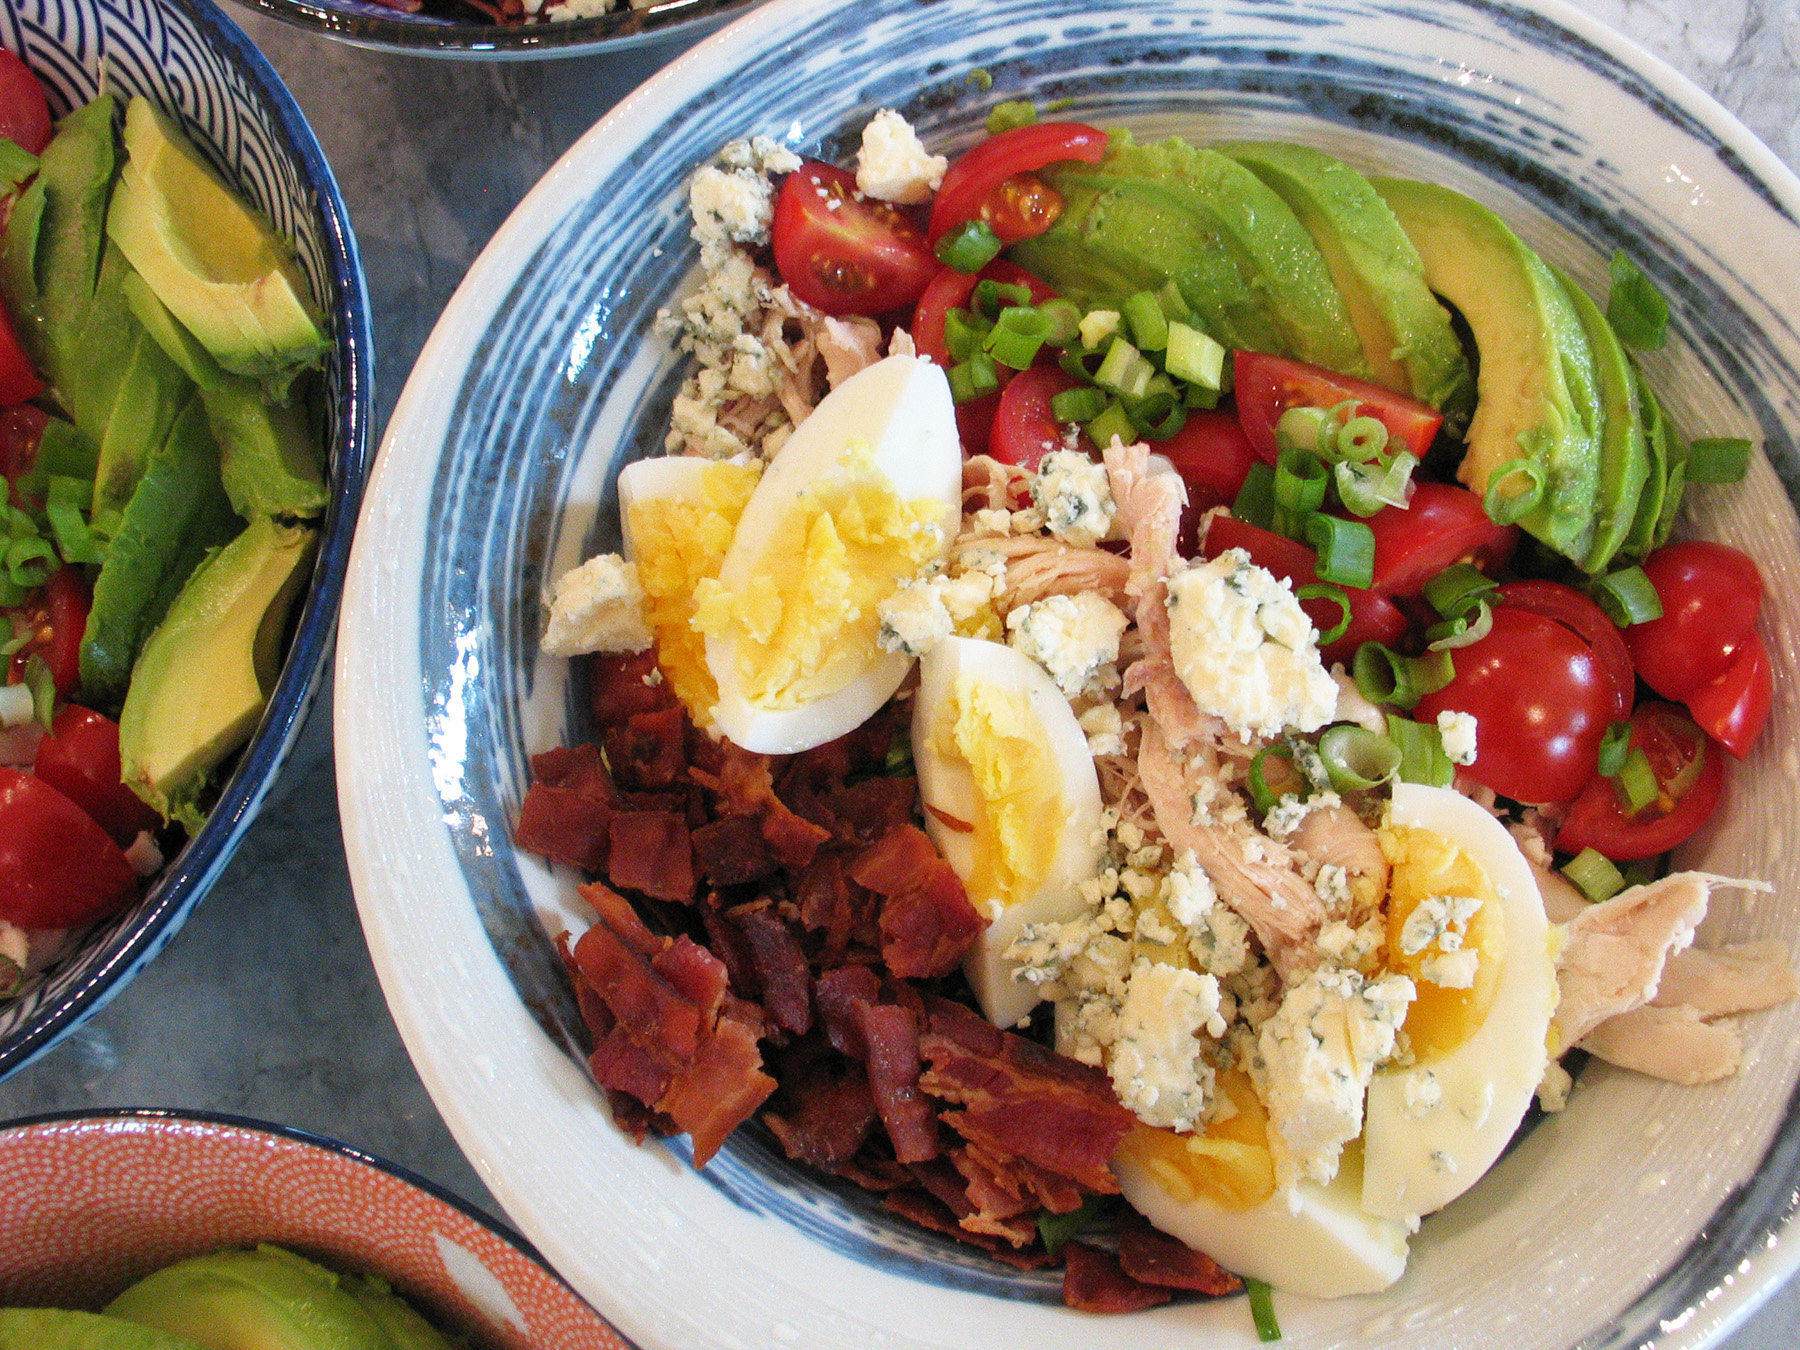 Cobb Salad (Any Which Way You Wish)